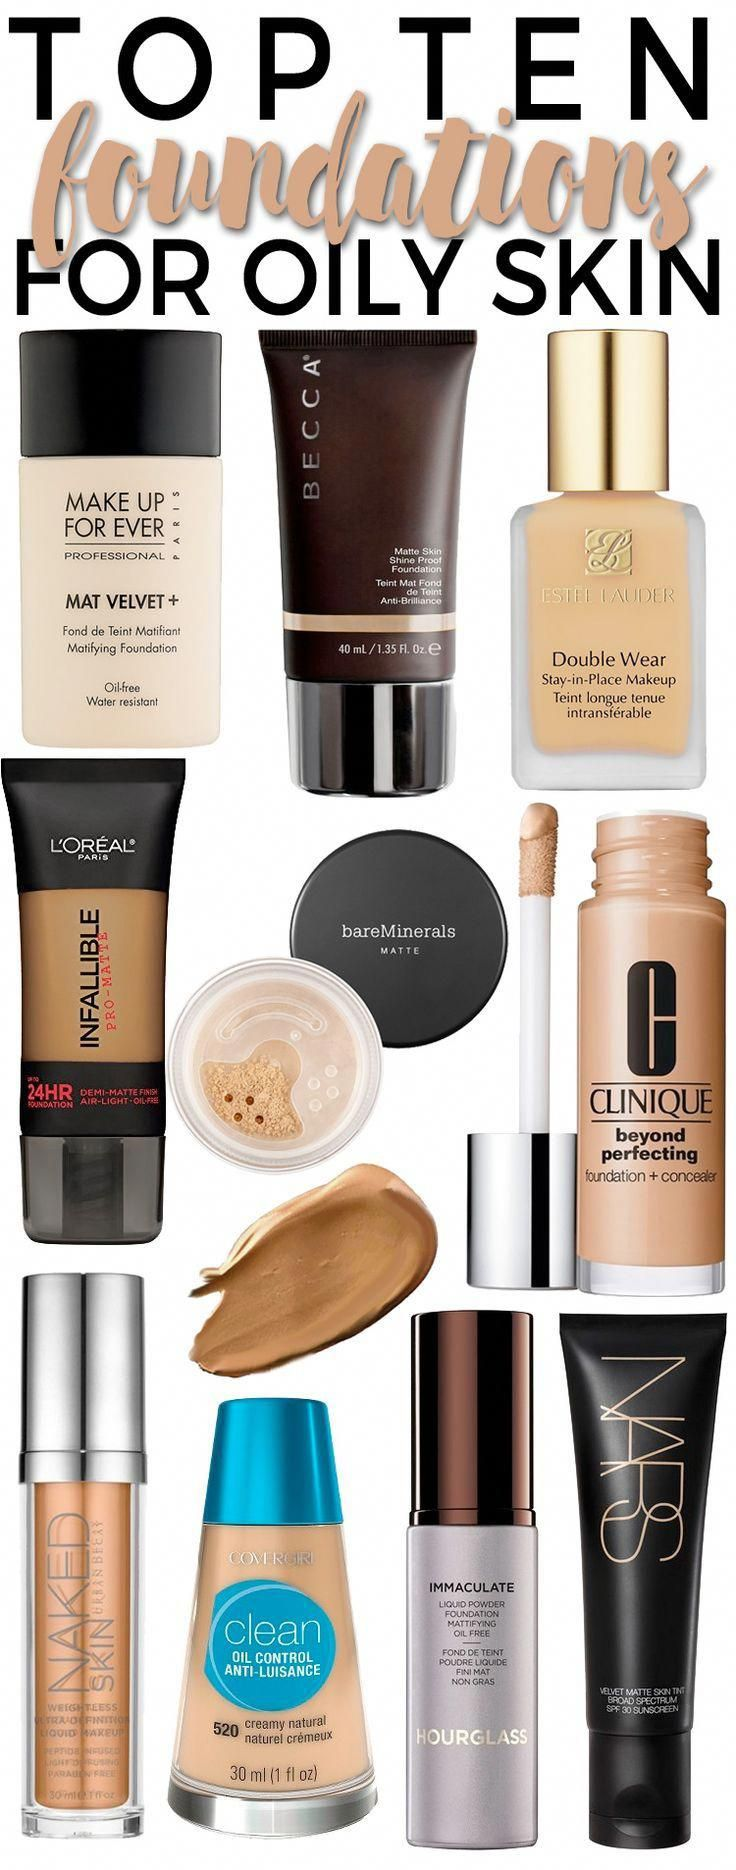 BeautyTipsForAcne in 2020 Foundation for oily skin